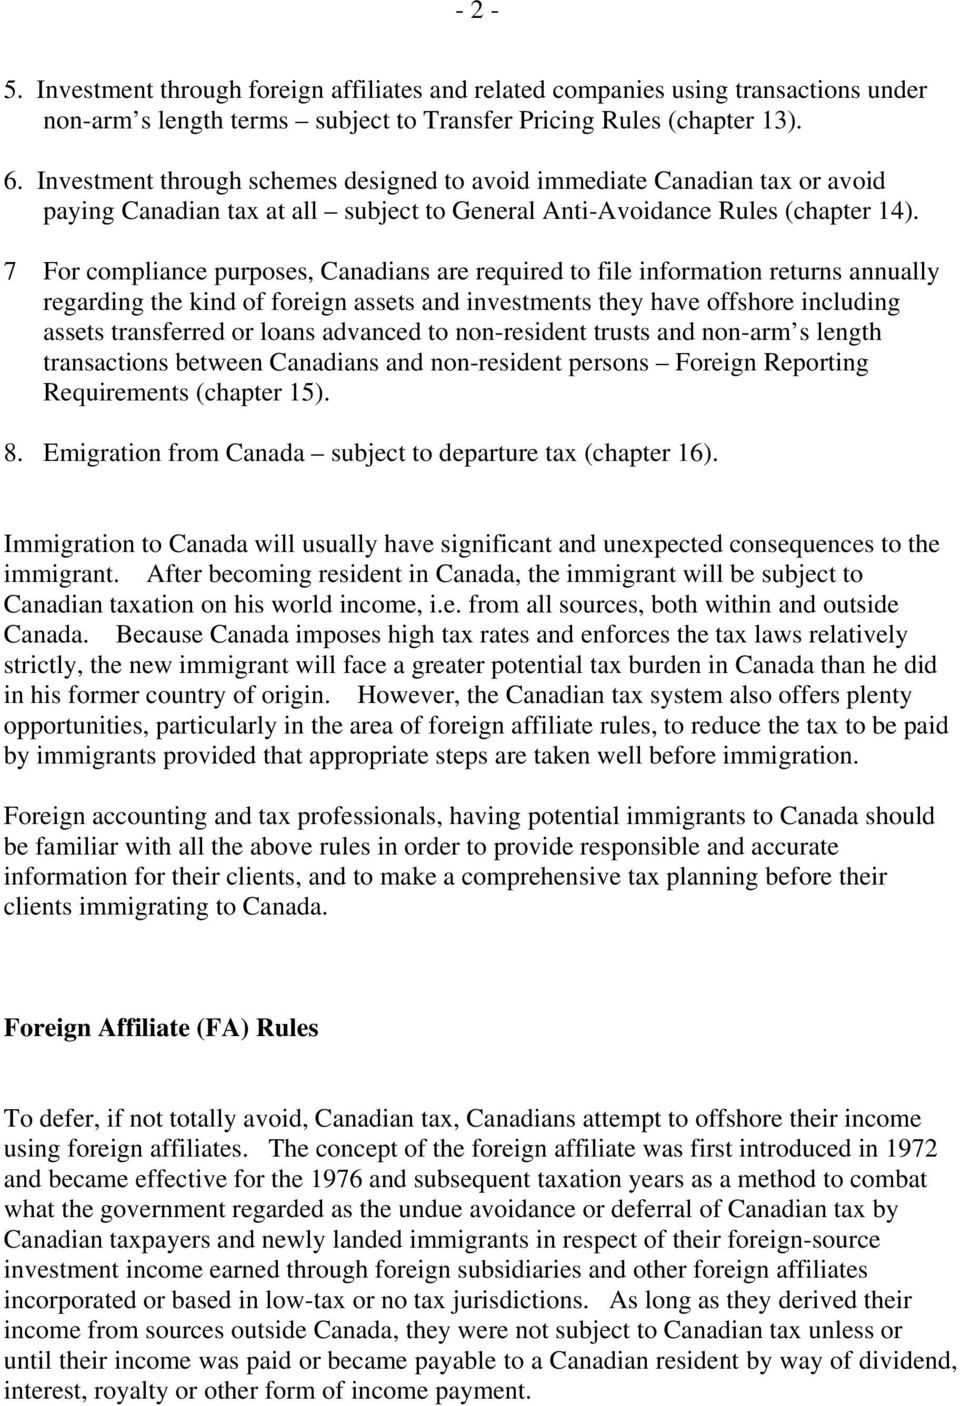 7 For compliance purposes, Canadians are required to file information returns annually regarding the kind of foreign assets and investments they have offshore including assets transferred or loans